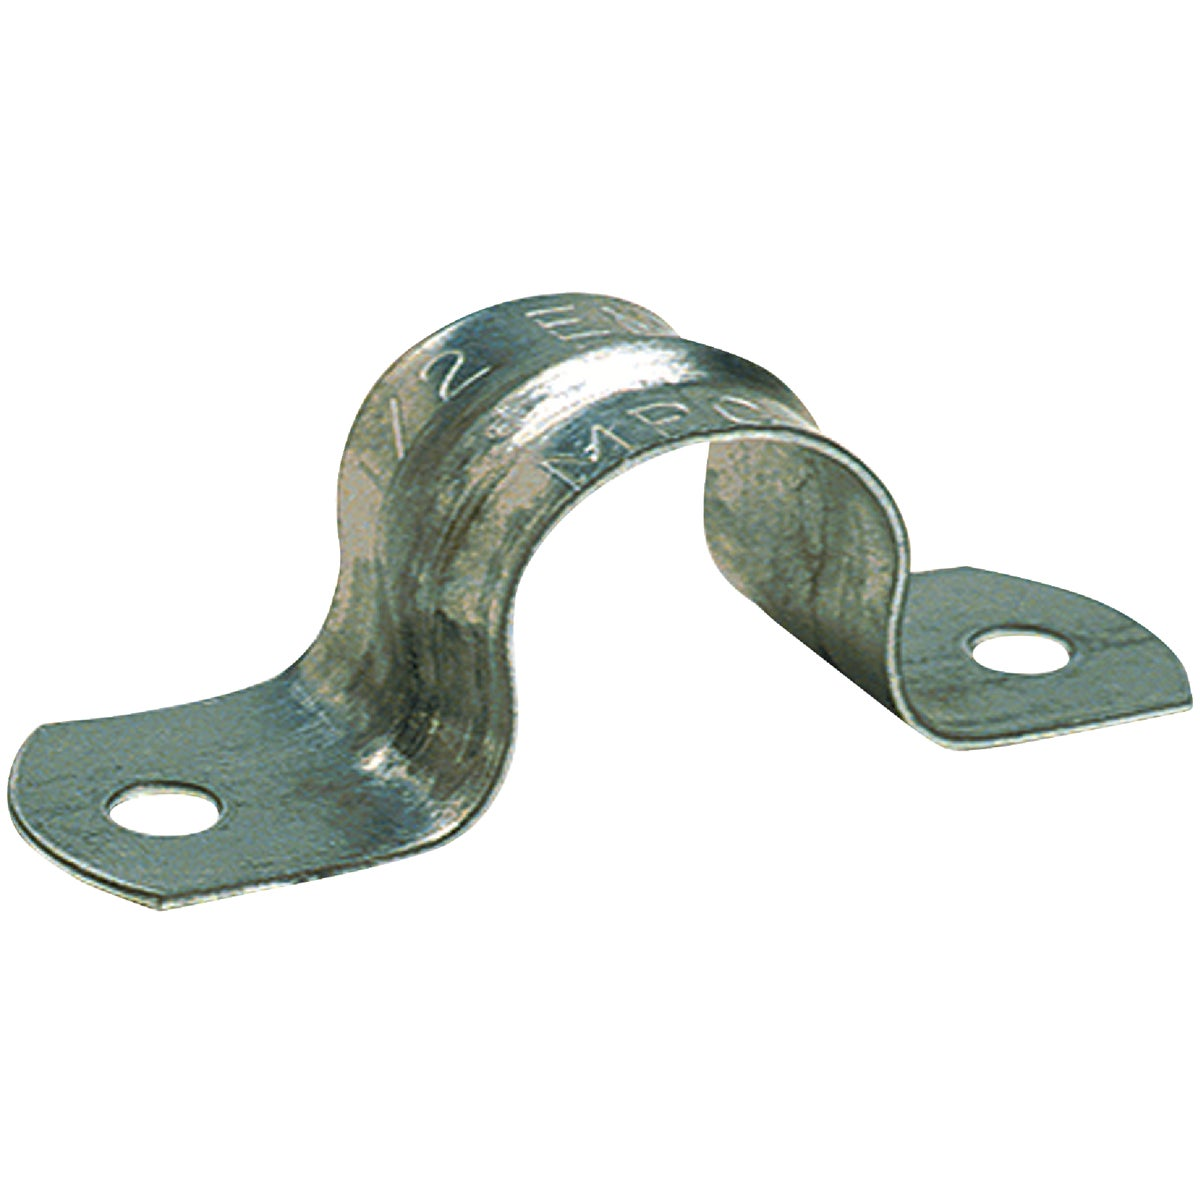 "100PC 1/2"" 2-HOLE STRAP - TS901100CP by Thomas & Betts"